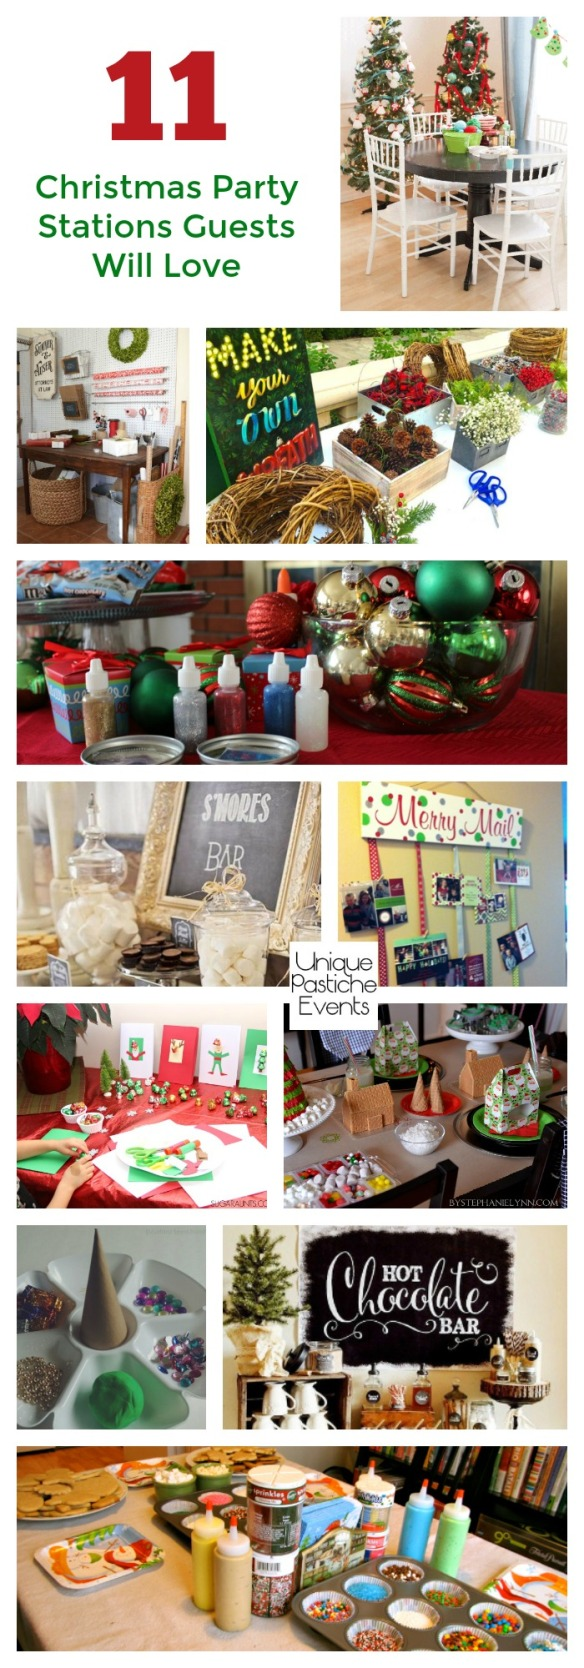 11 Christmas Party Stations Guests Will Love Unique Pastiche Events